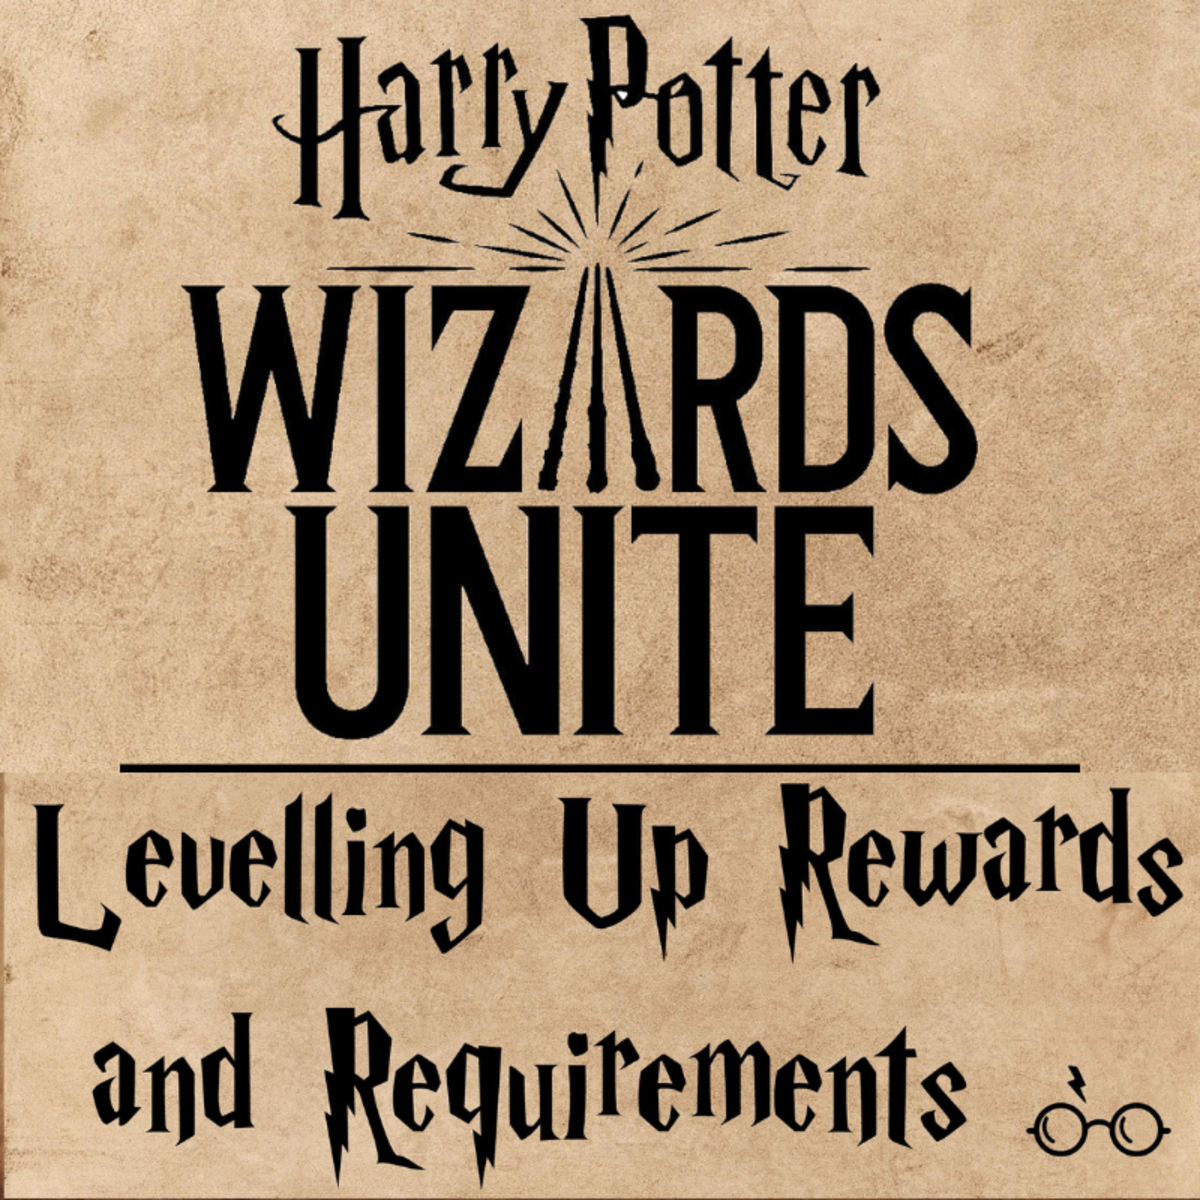 Harry Potter Wizards Unite: Levelling up rewards and requirements